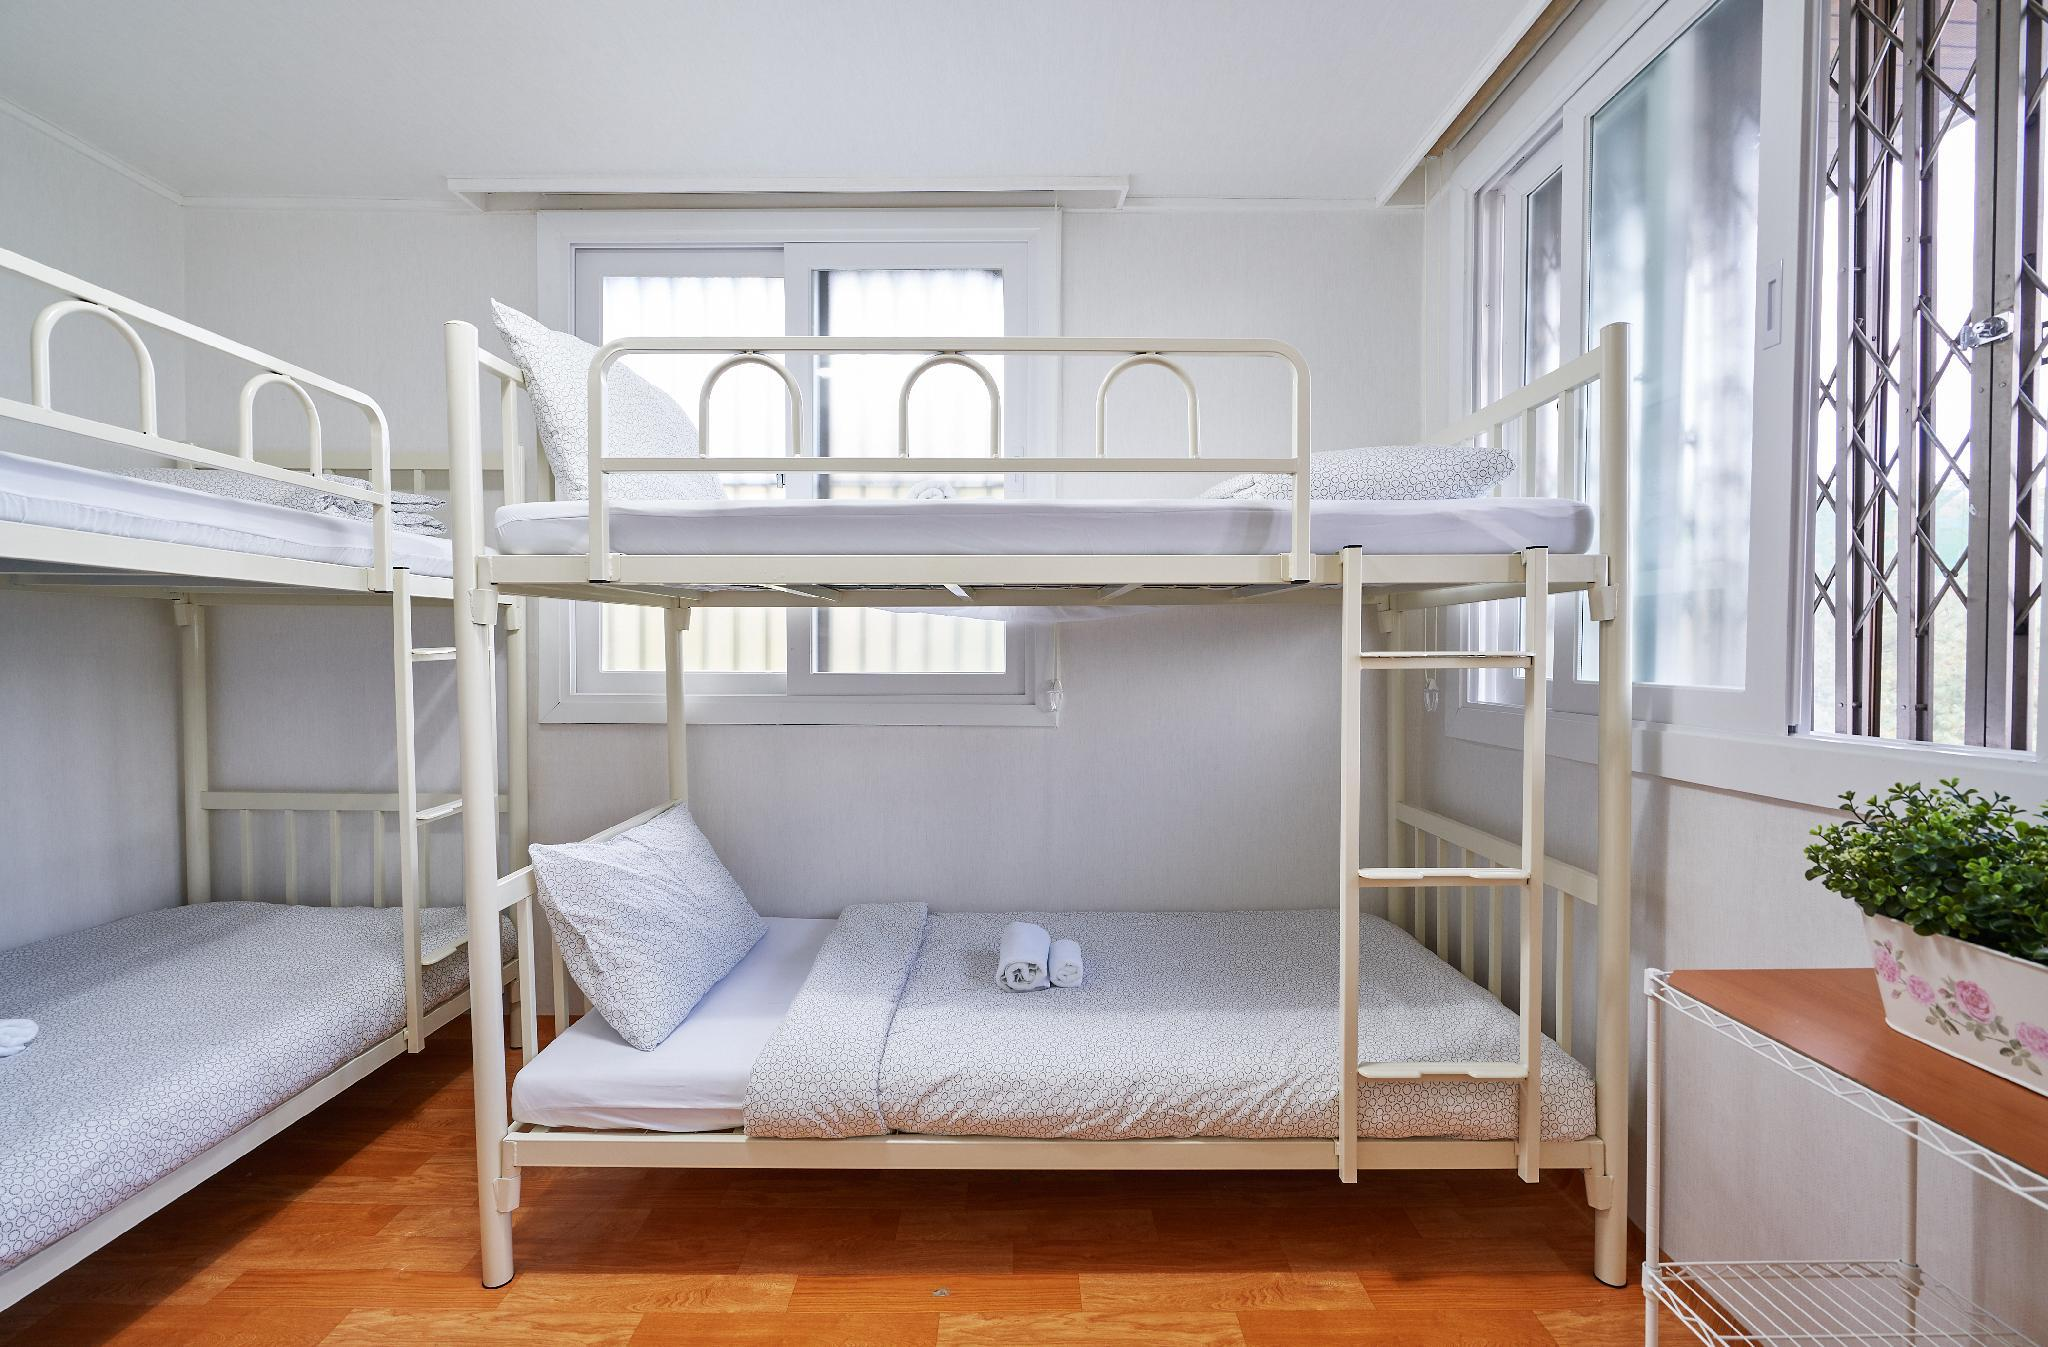 Seoul Best Stay 6 Bed Female Only  Bunk Bed  1